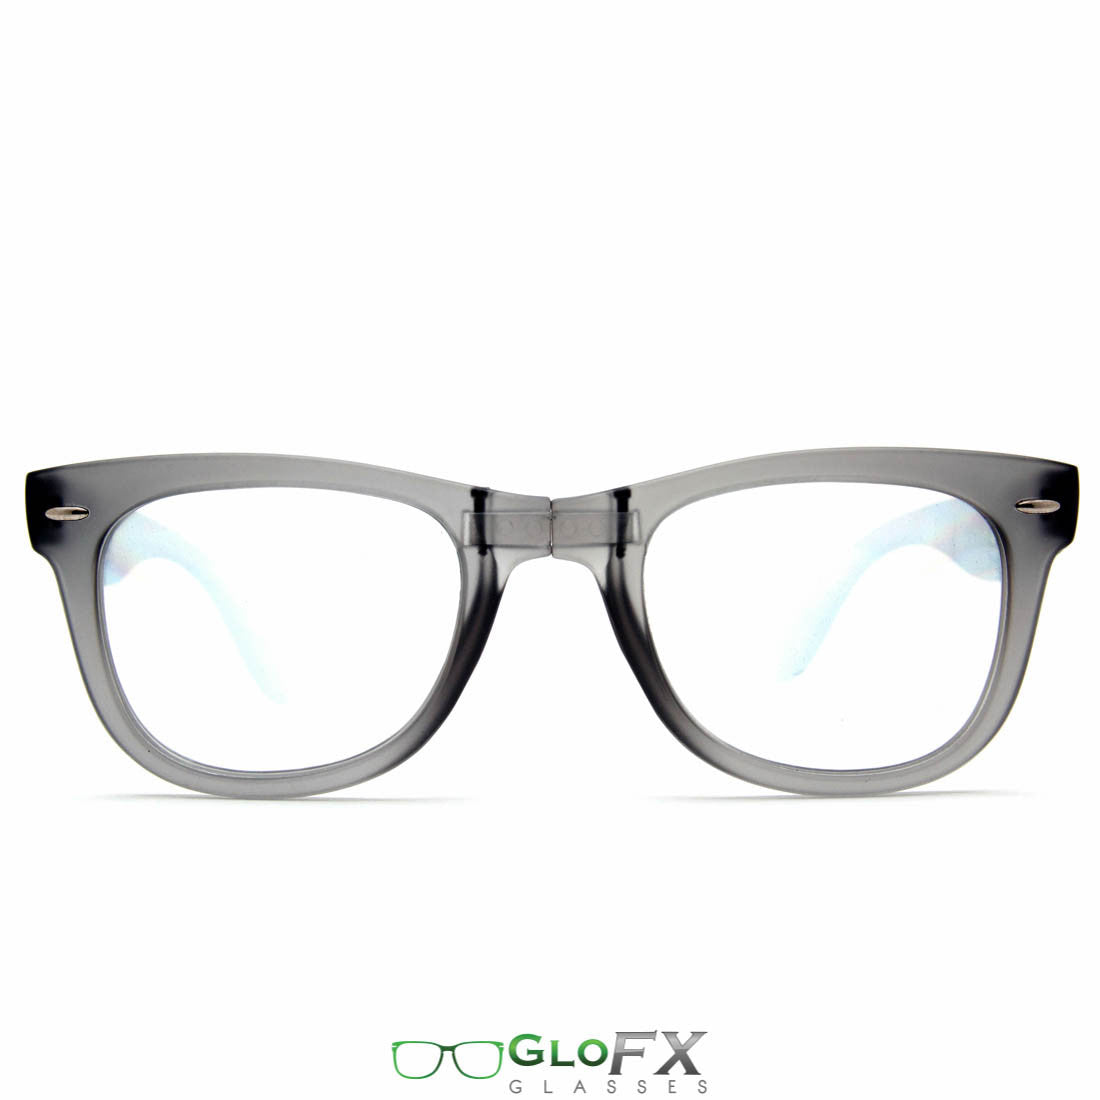 GloFX Foldable Diffraction Glasses Charcoal